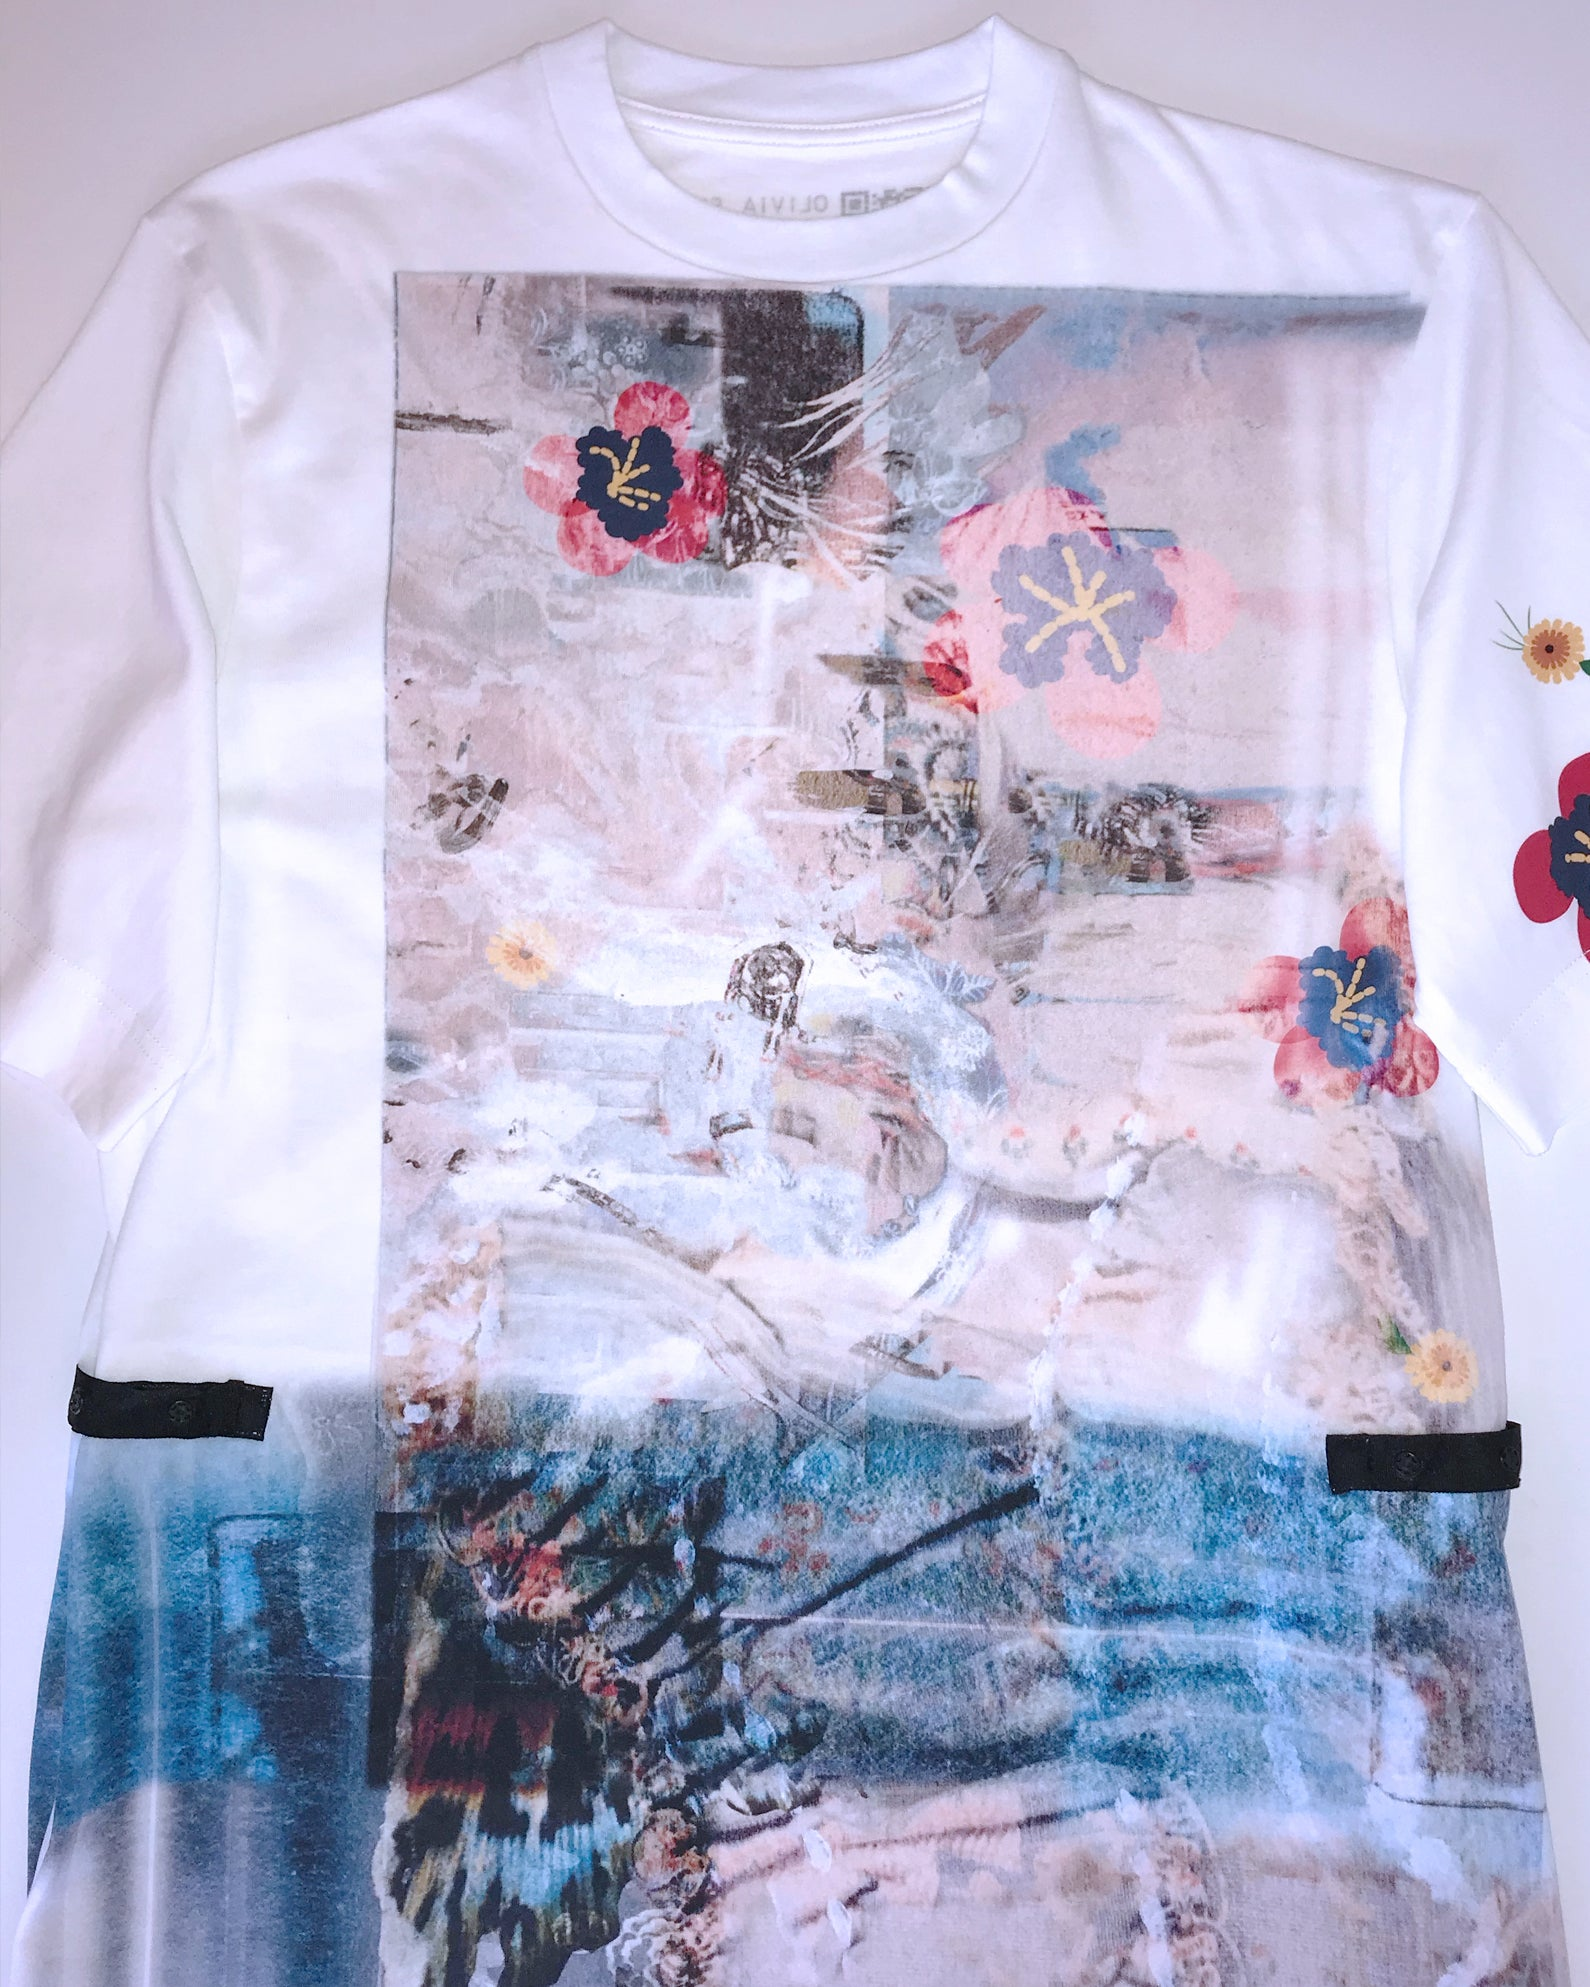 The Koi t-shirt dress